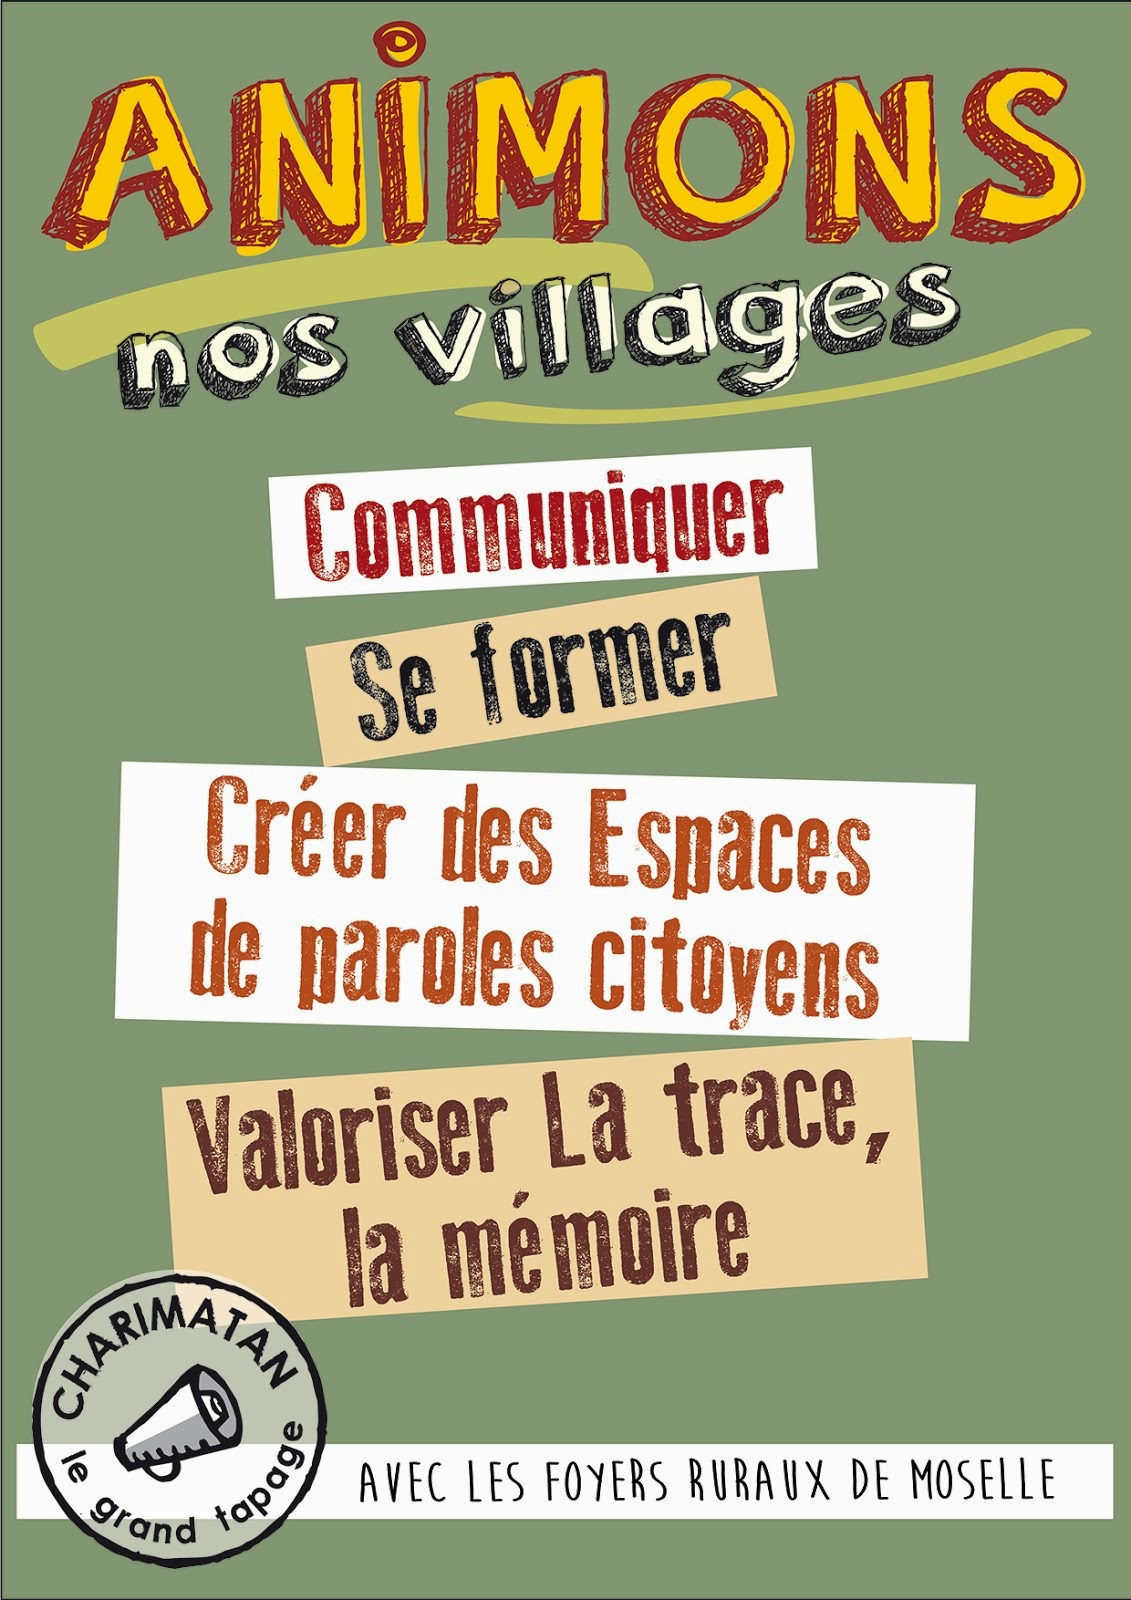 ANIMONS NOS VILLAGES!!!